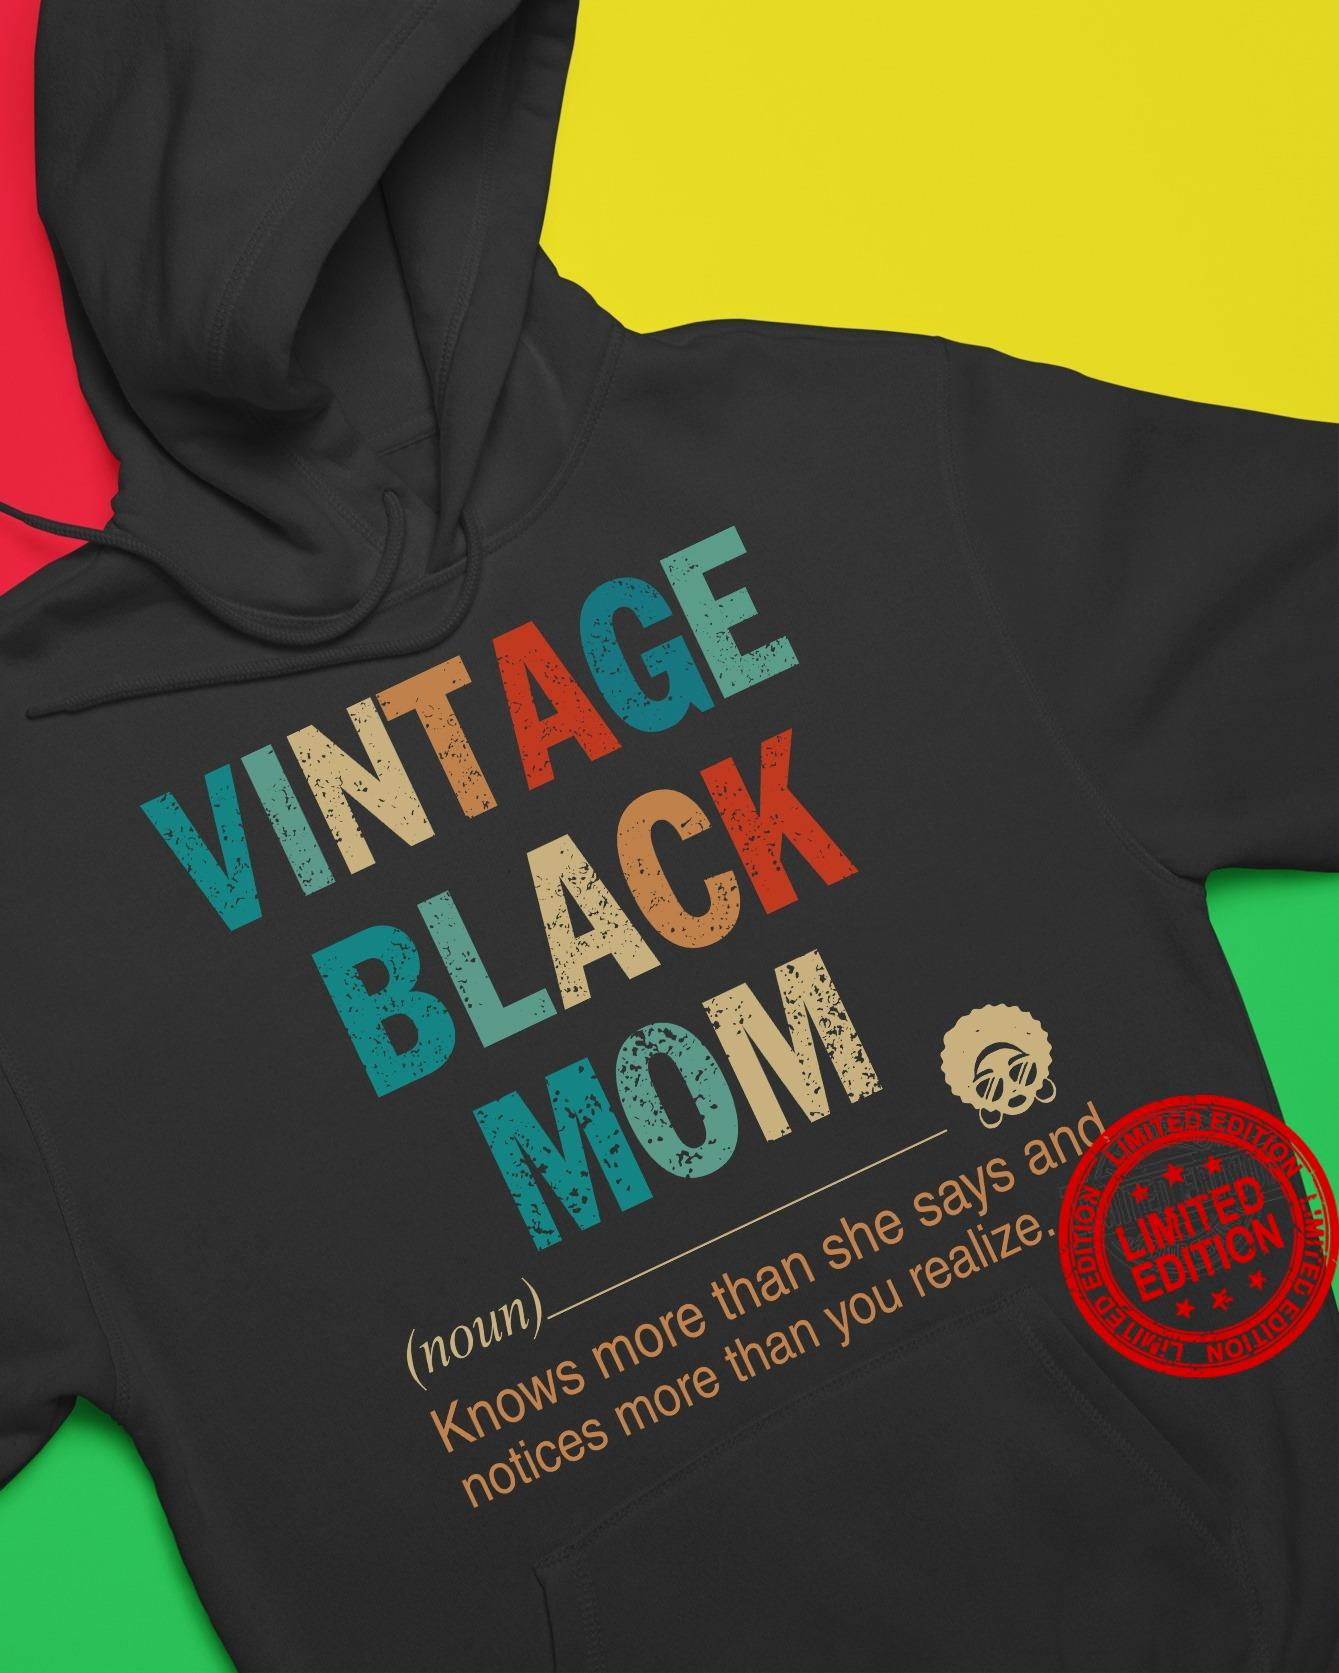 Vintage Black Mom Knows More Than She Says And Notices More Than You Realize Shirt